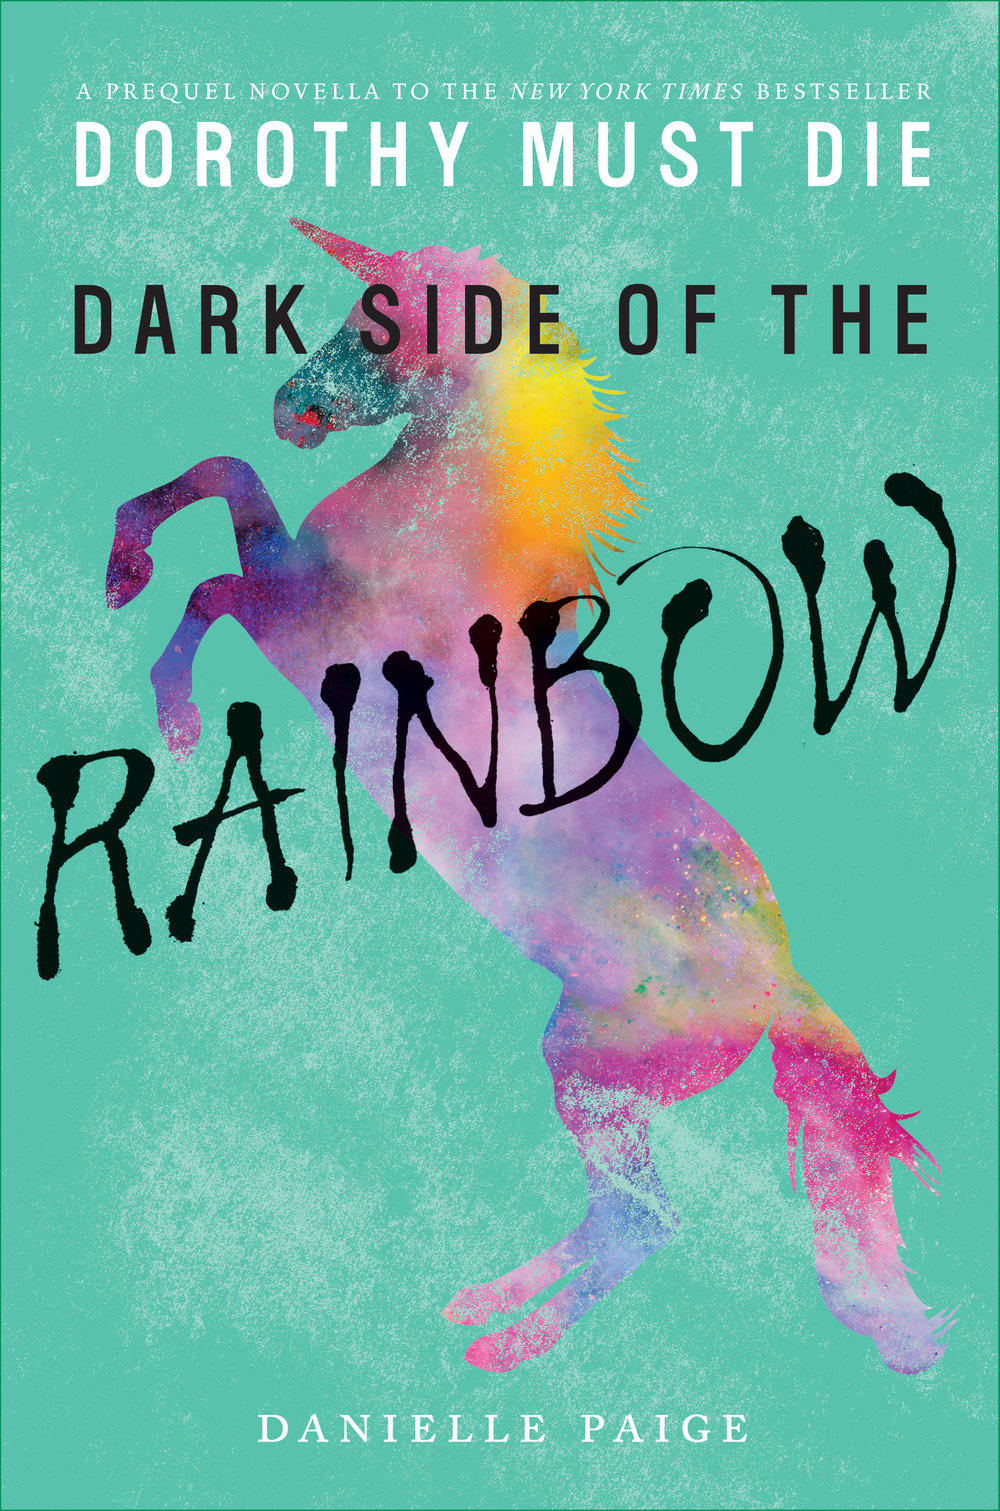 Dark Side of the Rainbow 2chosen.jpg